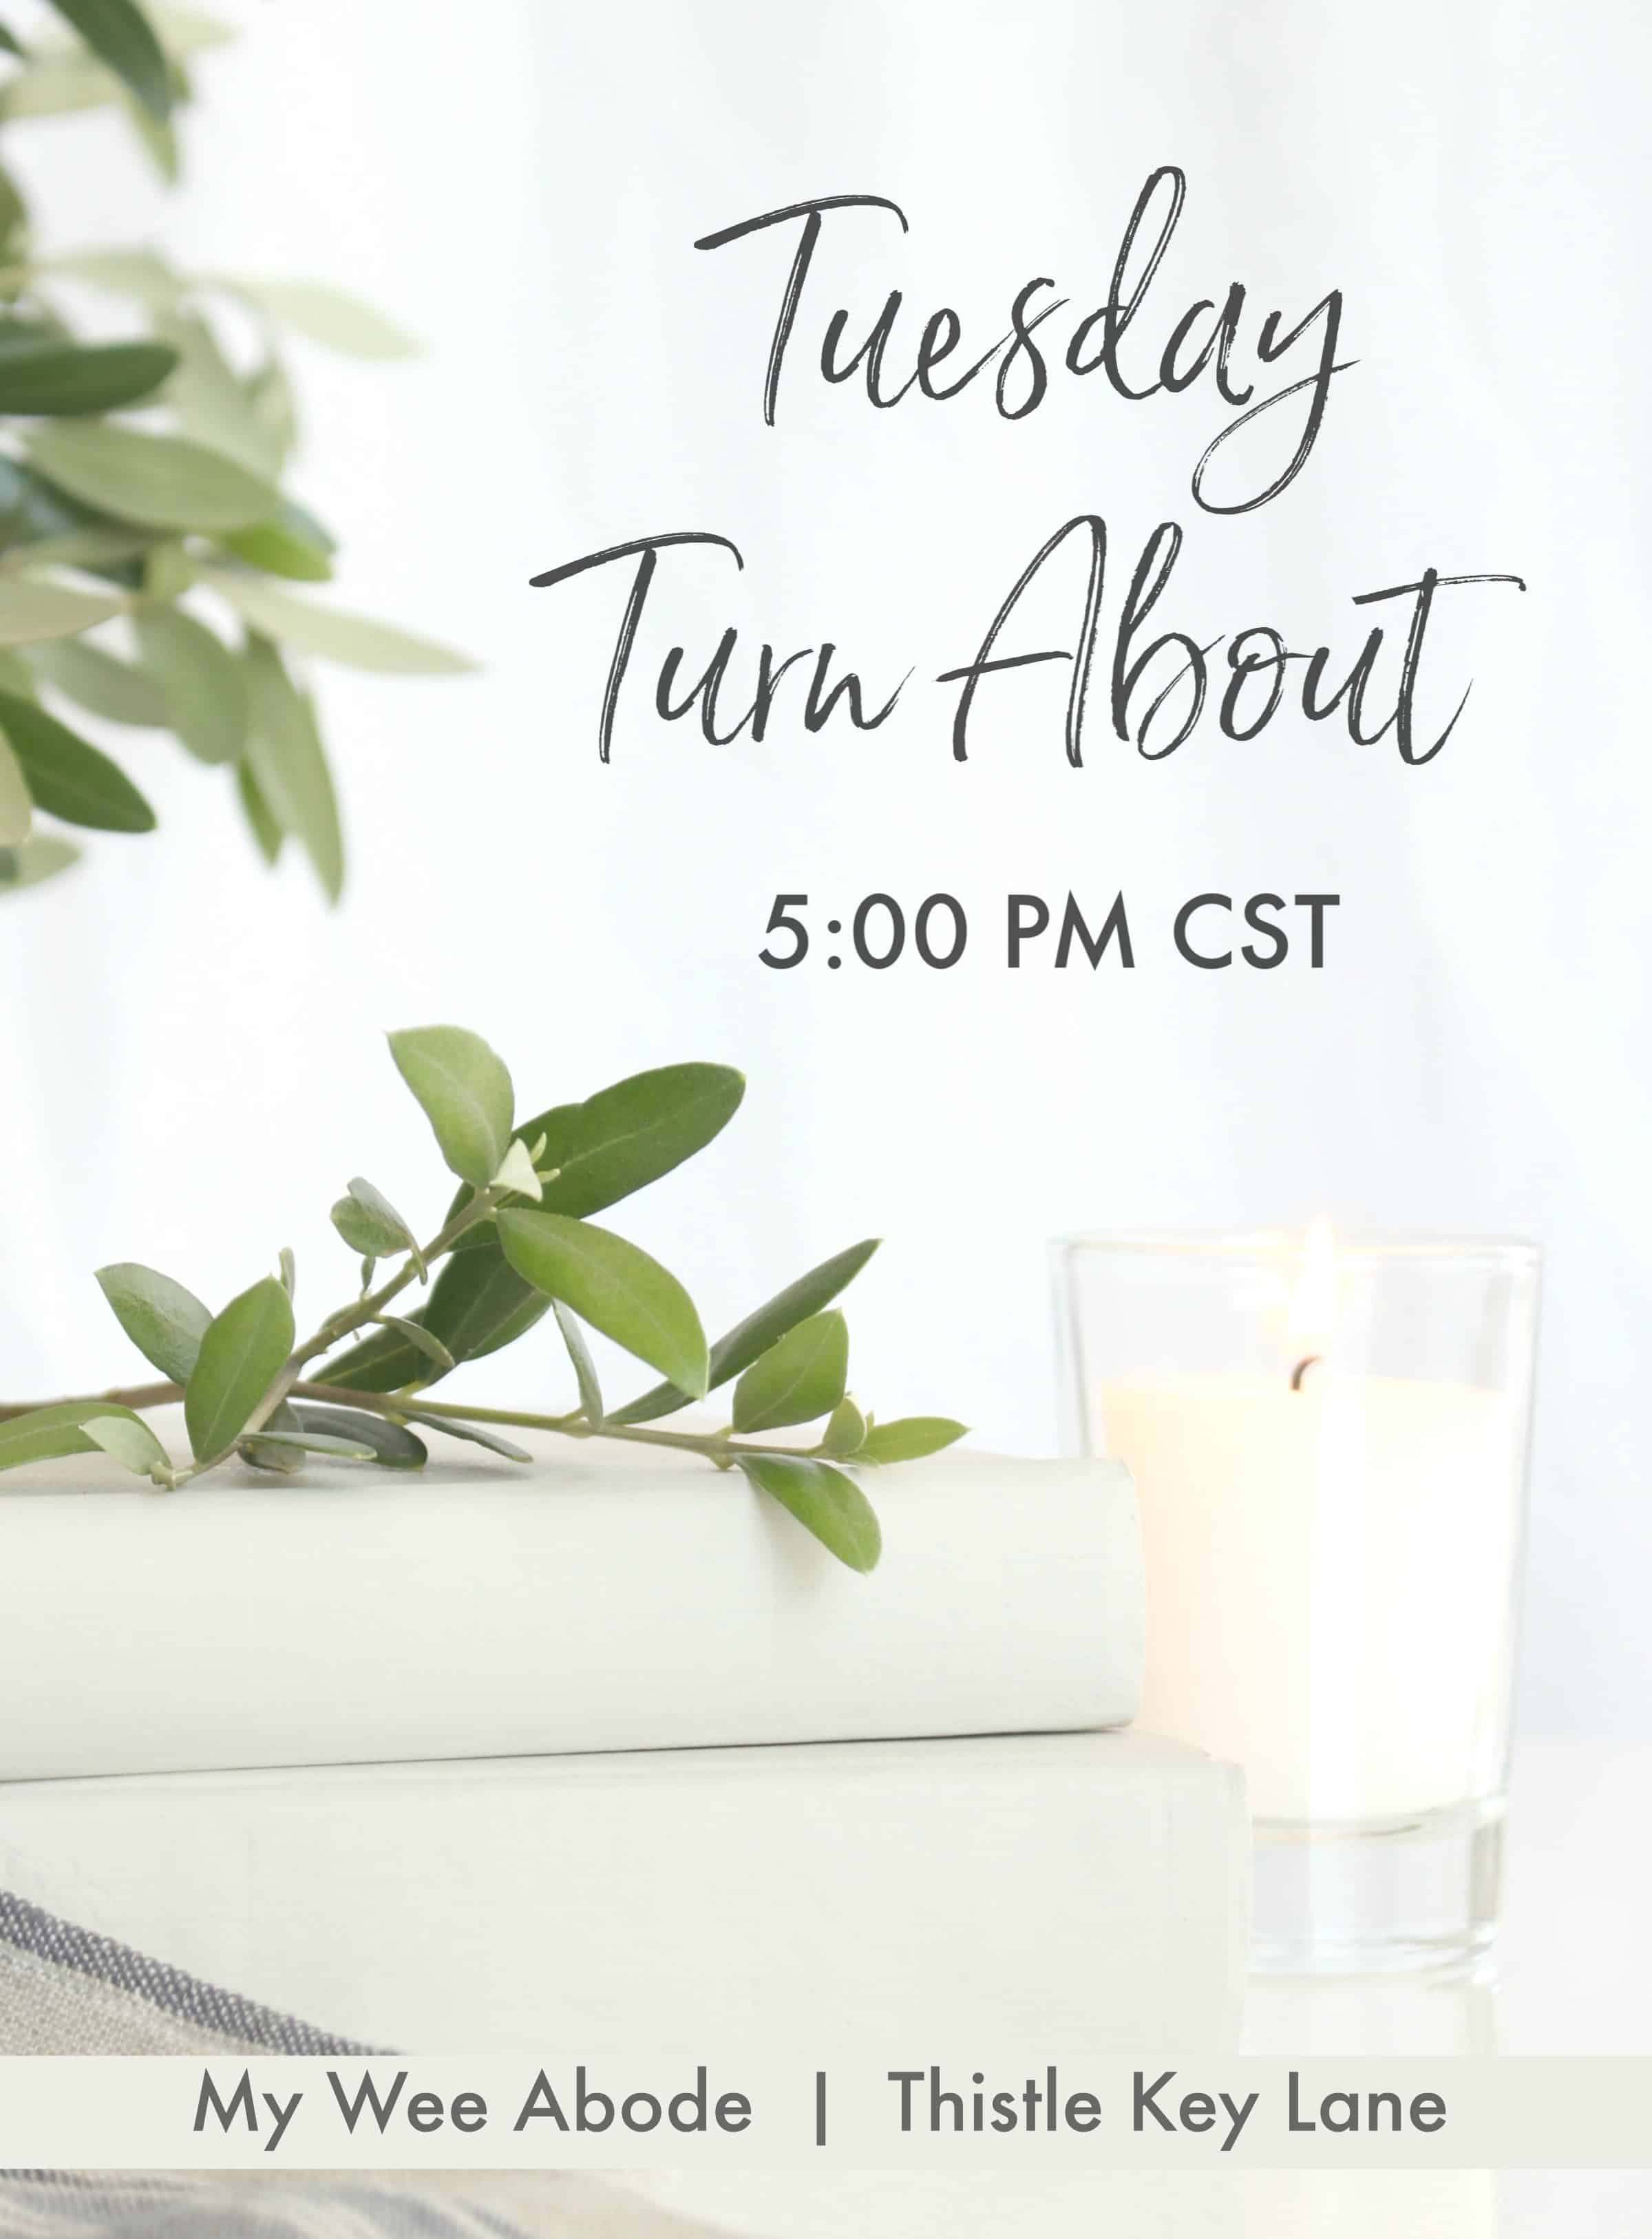 title banner for tuesday turn about